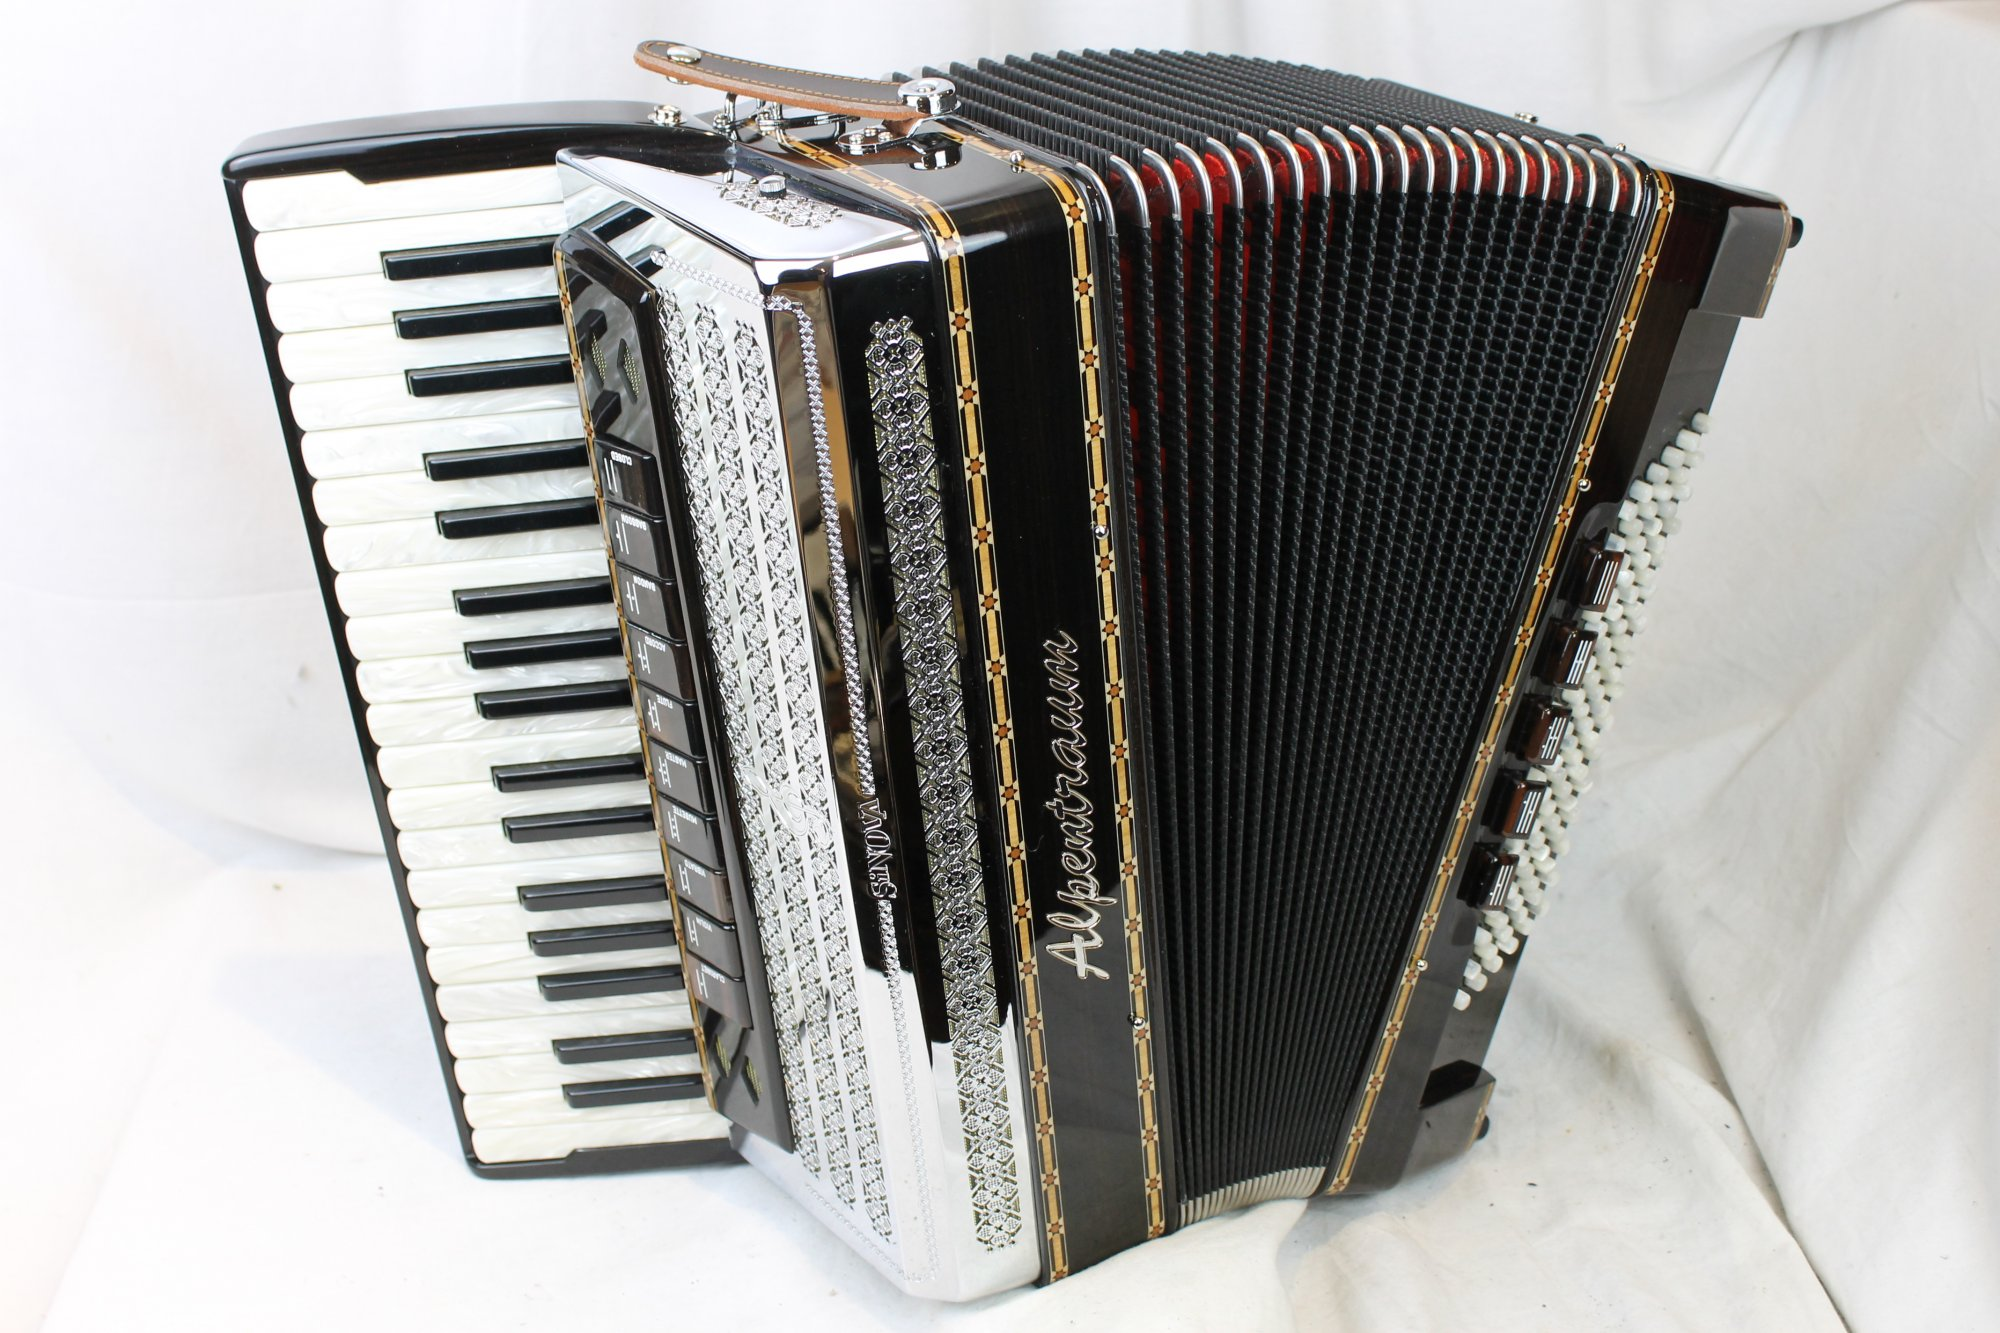 NEW Black Forest Alpentraum 496 Helikon Piano Accordion LMMM 38 96